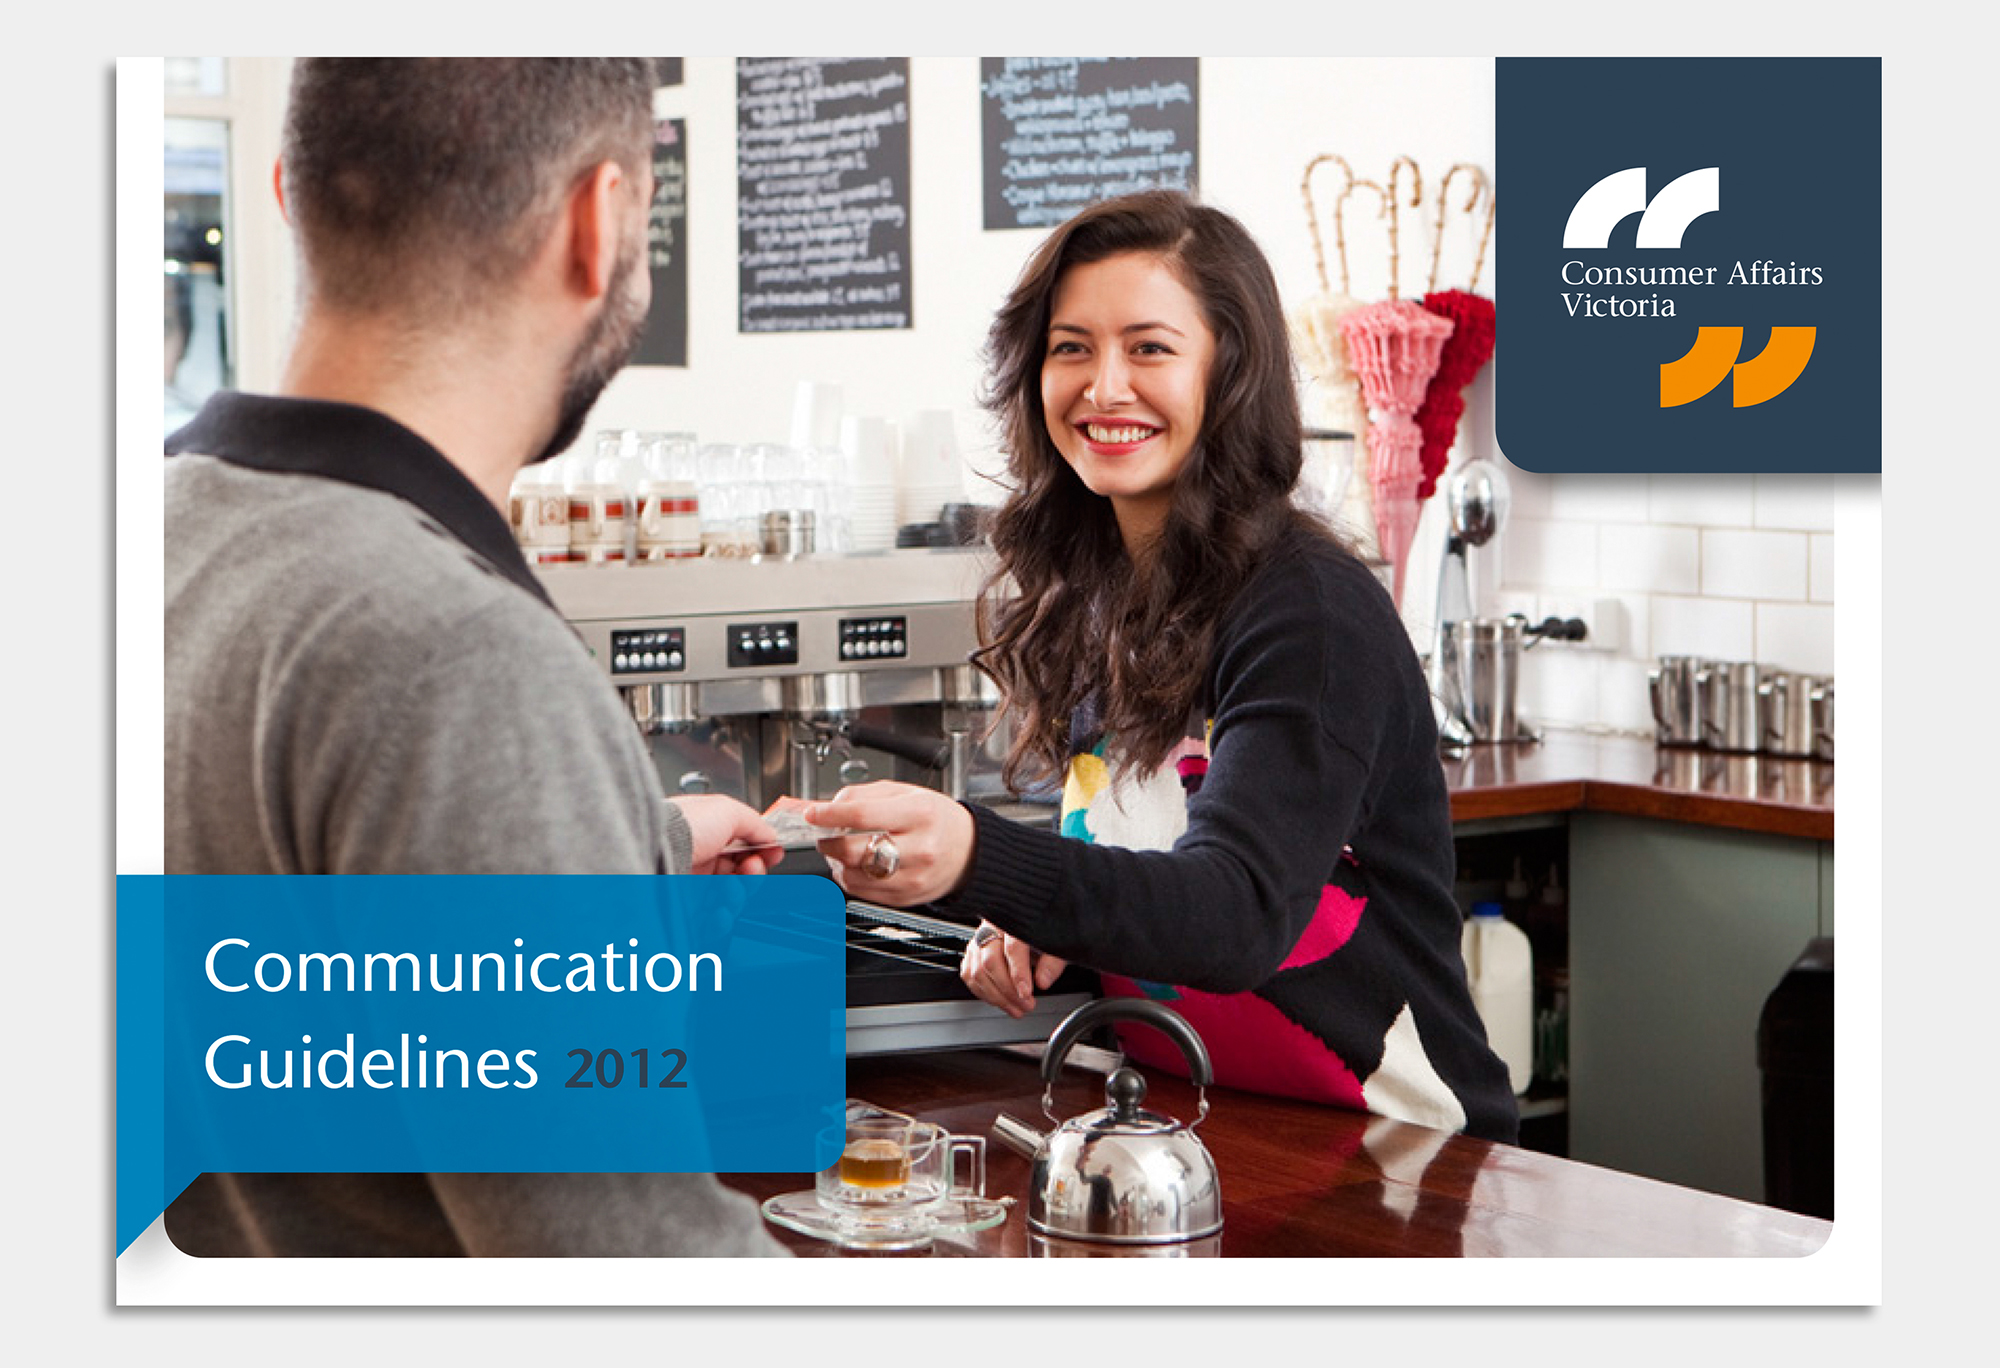 Consumer Affairs Victoria Communication Guidelines cover